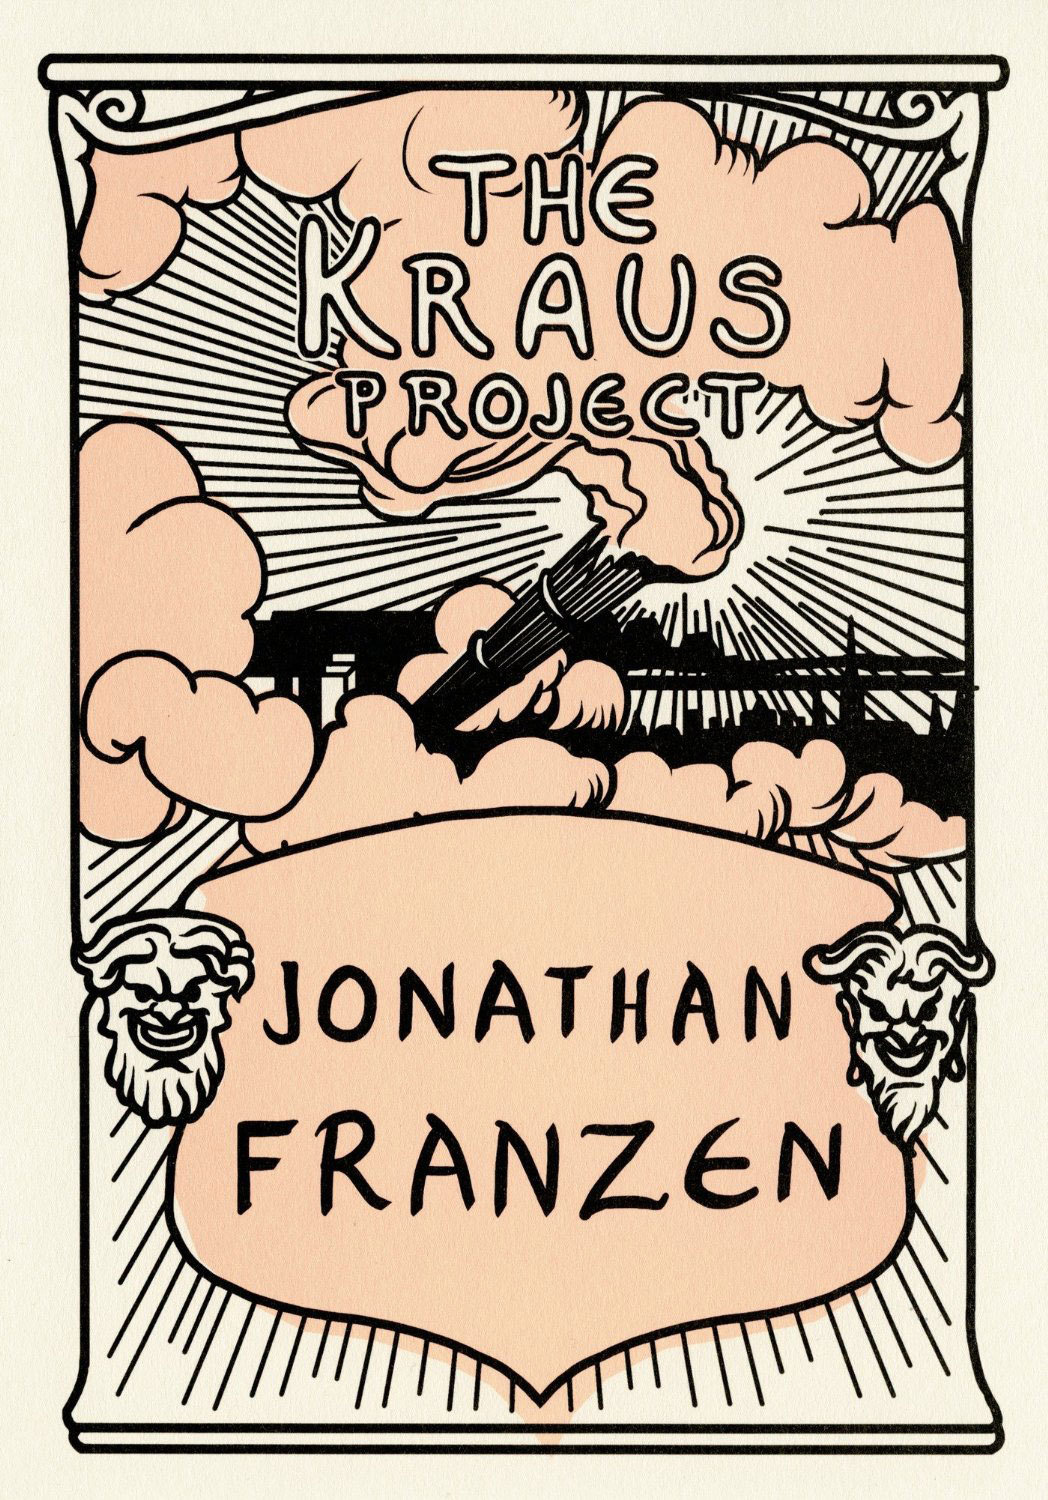 Medium jonathan franzen 2c het kraus project